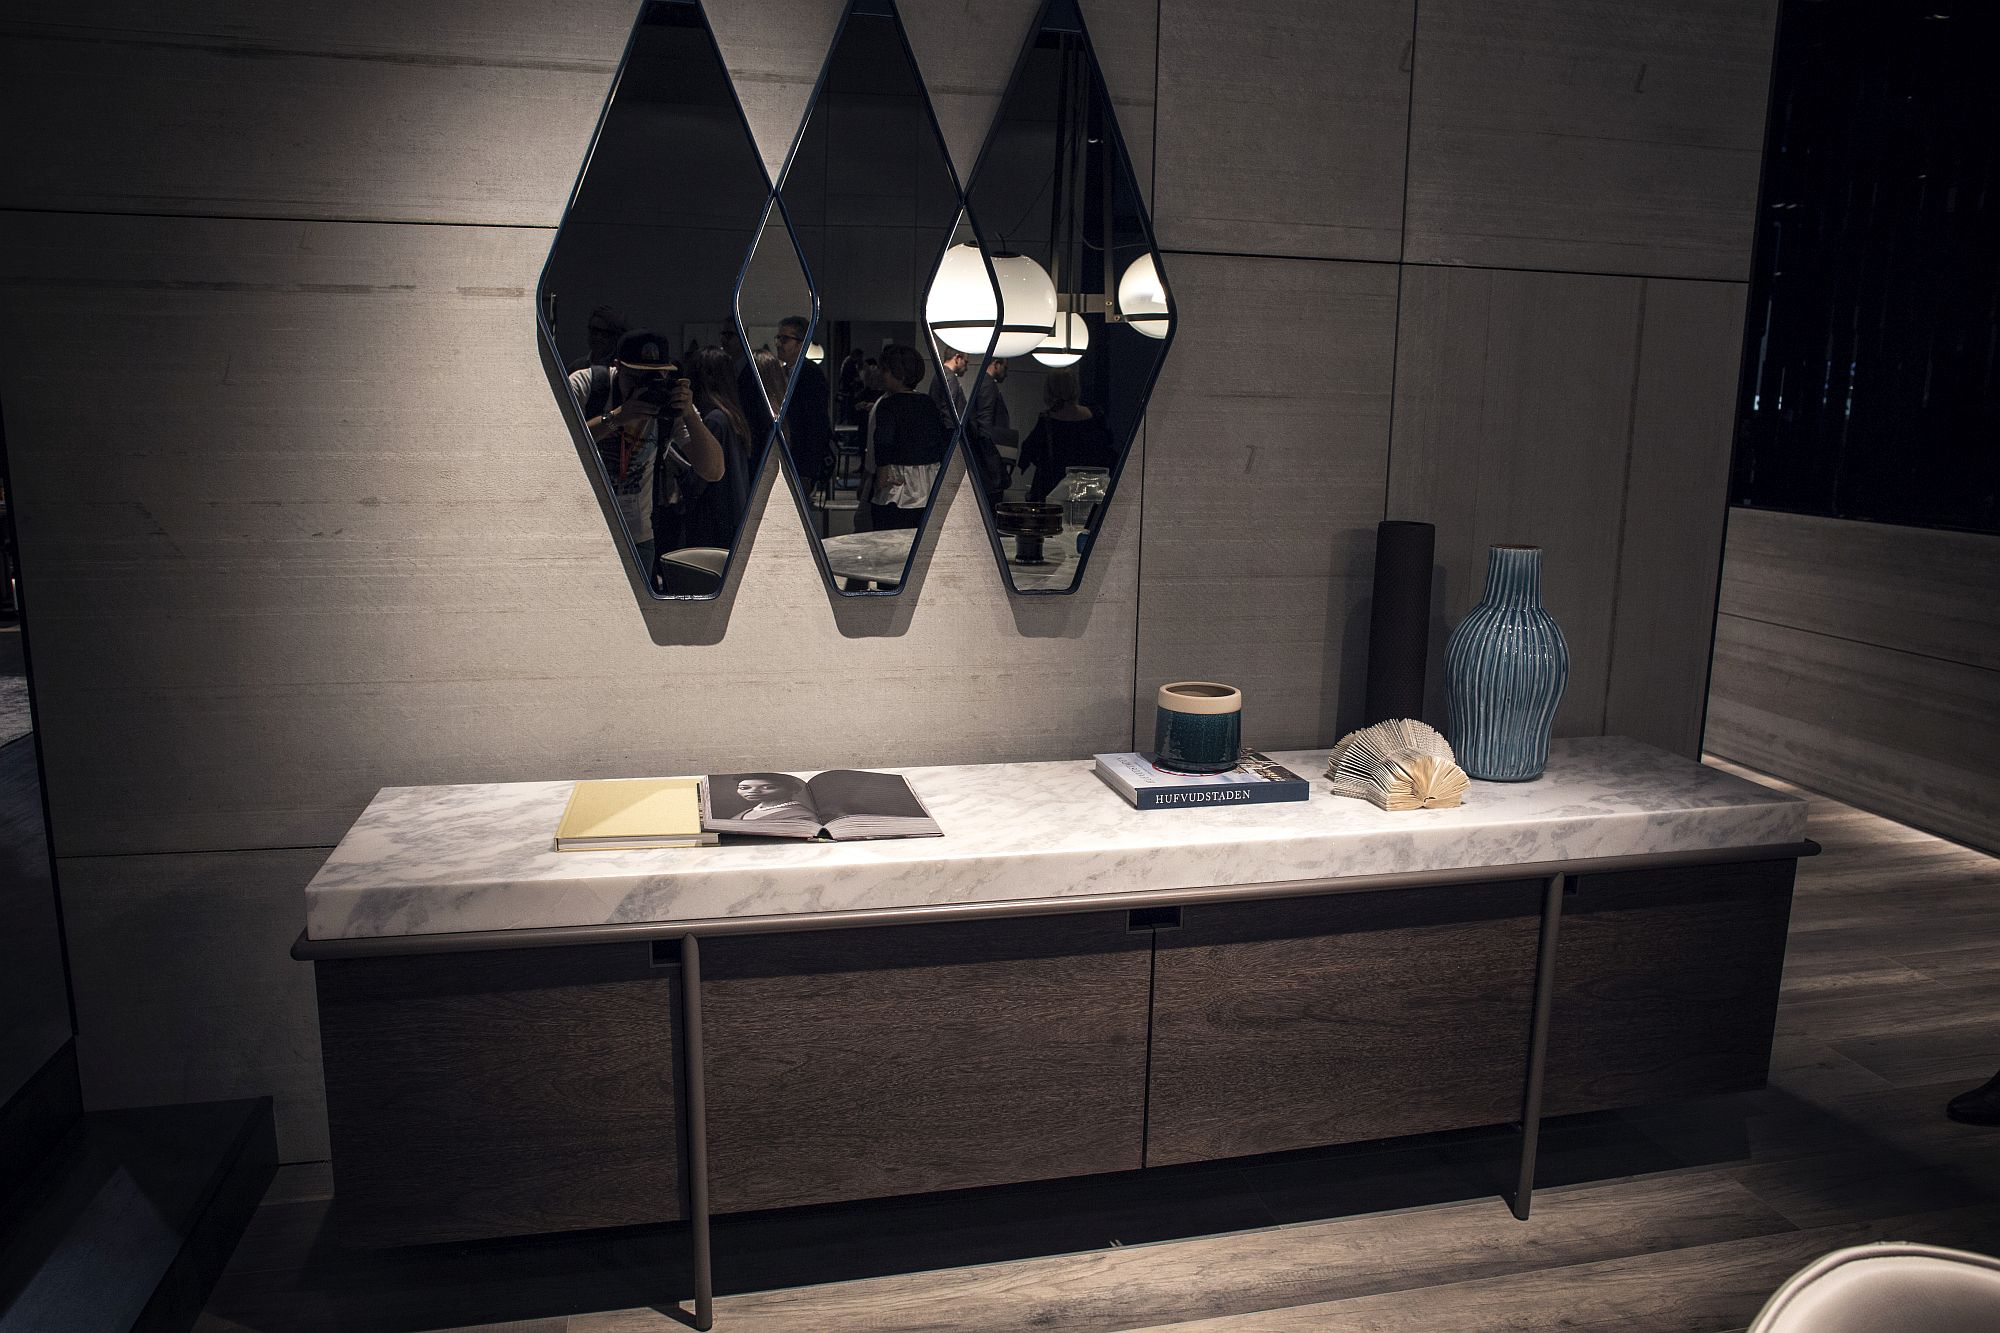 Diamond shaped mirrors bring geo contrast to the modern interior